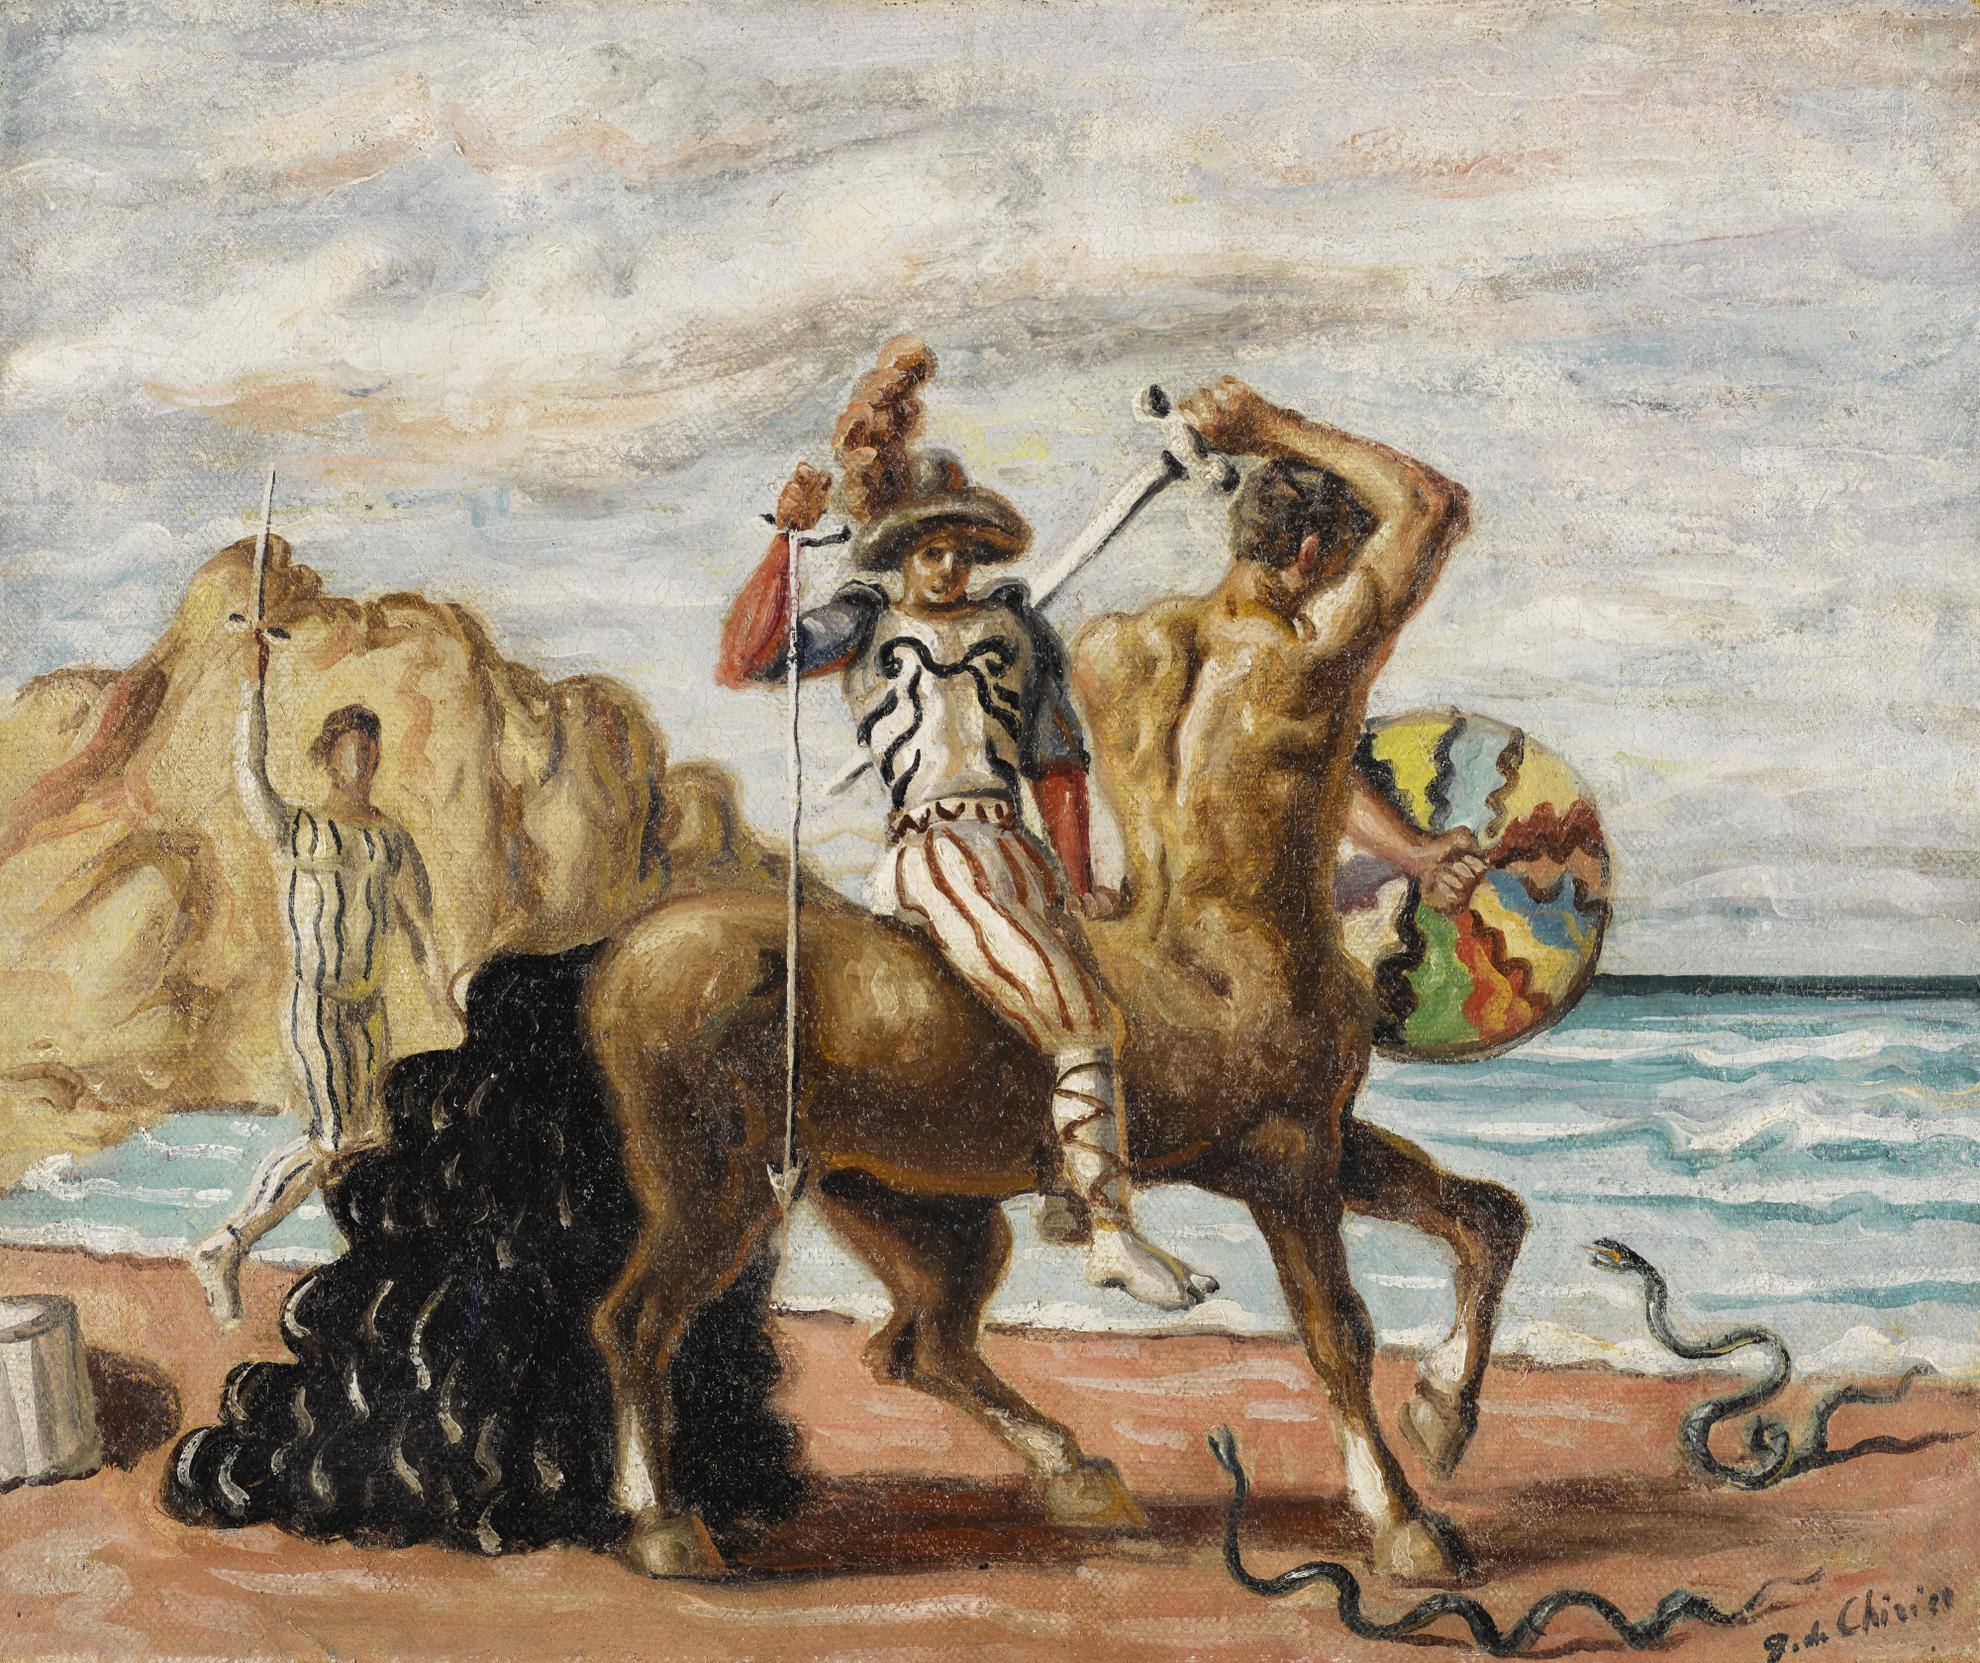 Giorgio de Chirico-Puritani E Centauro In Riva Al Mare (Puritan And Centaur By The Sea)-1935